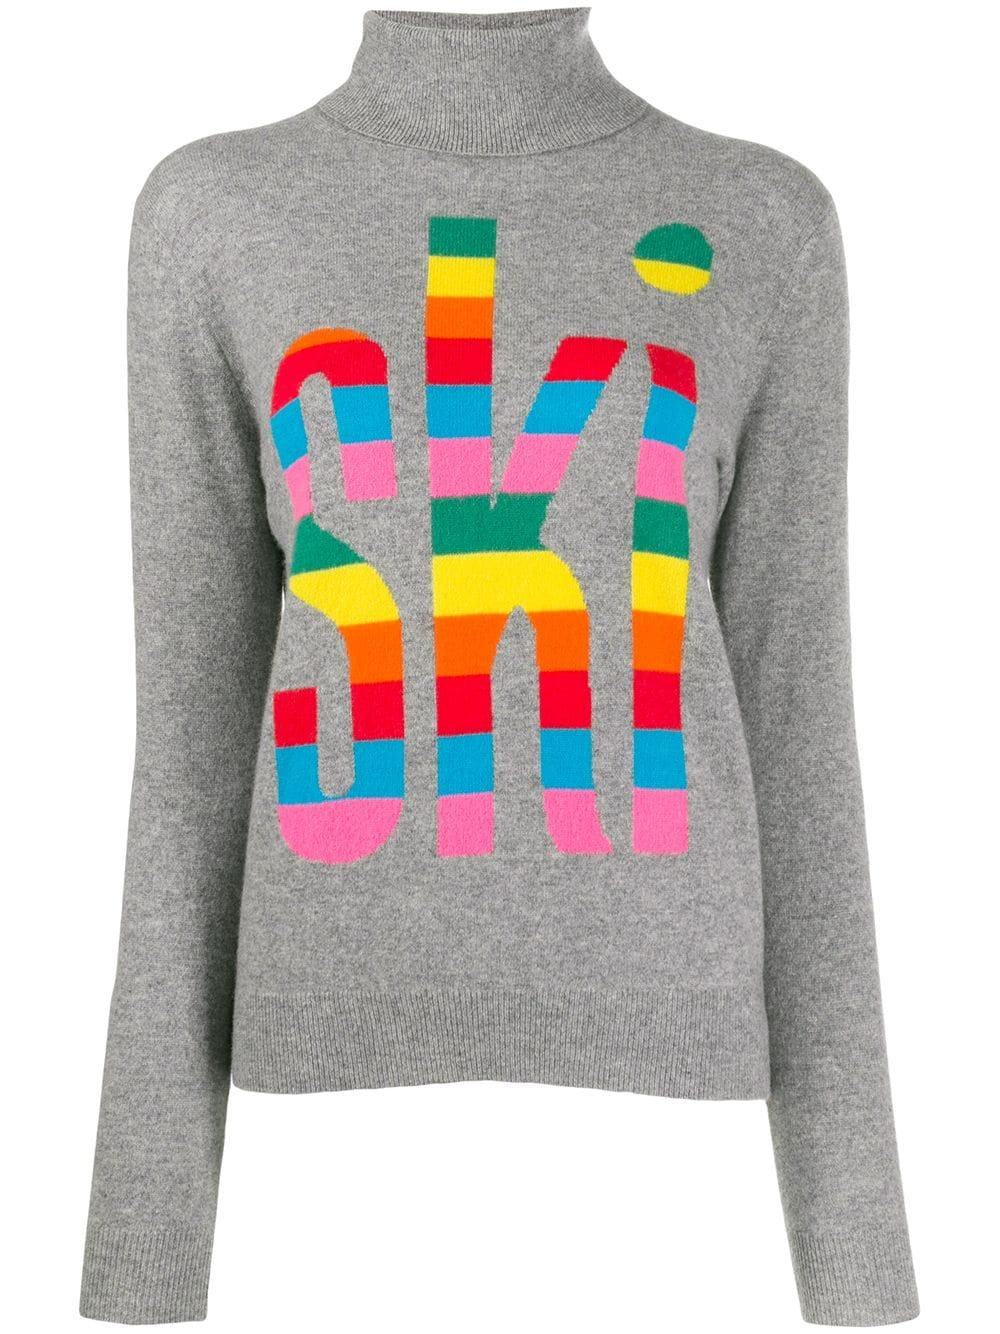 Rainbow Ski Sweater